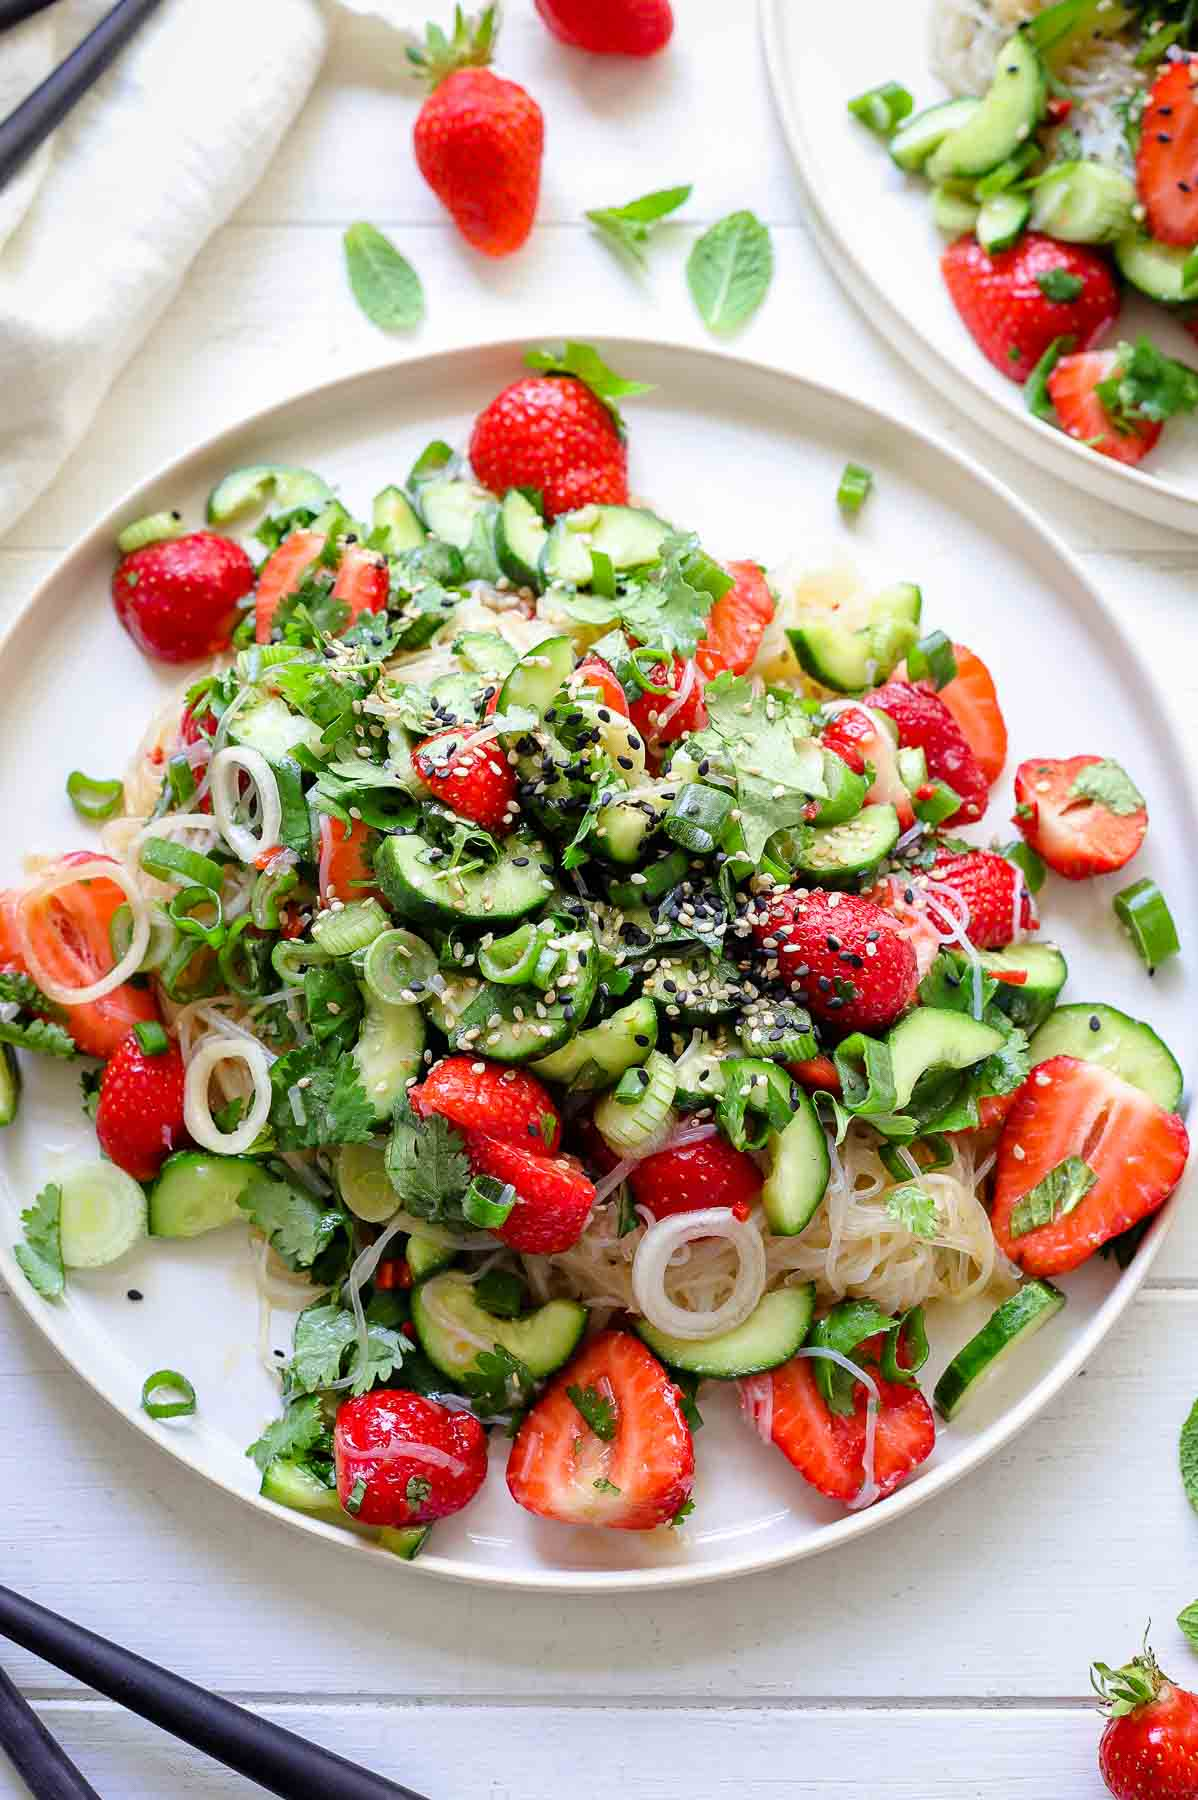 Vermicelli-Noodle Salad with Strawberries & Cucumber